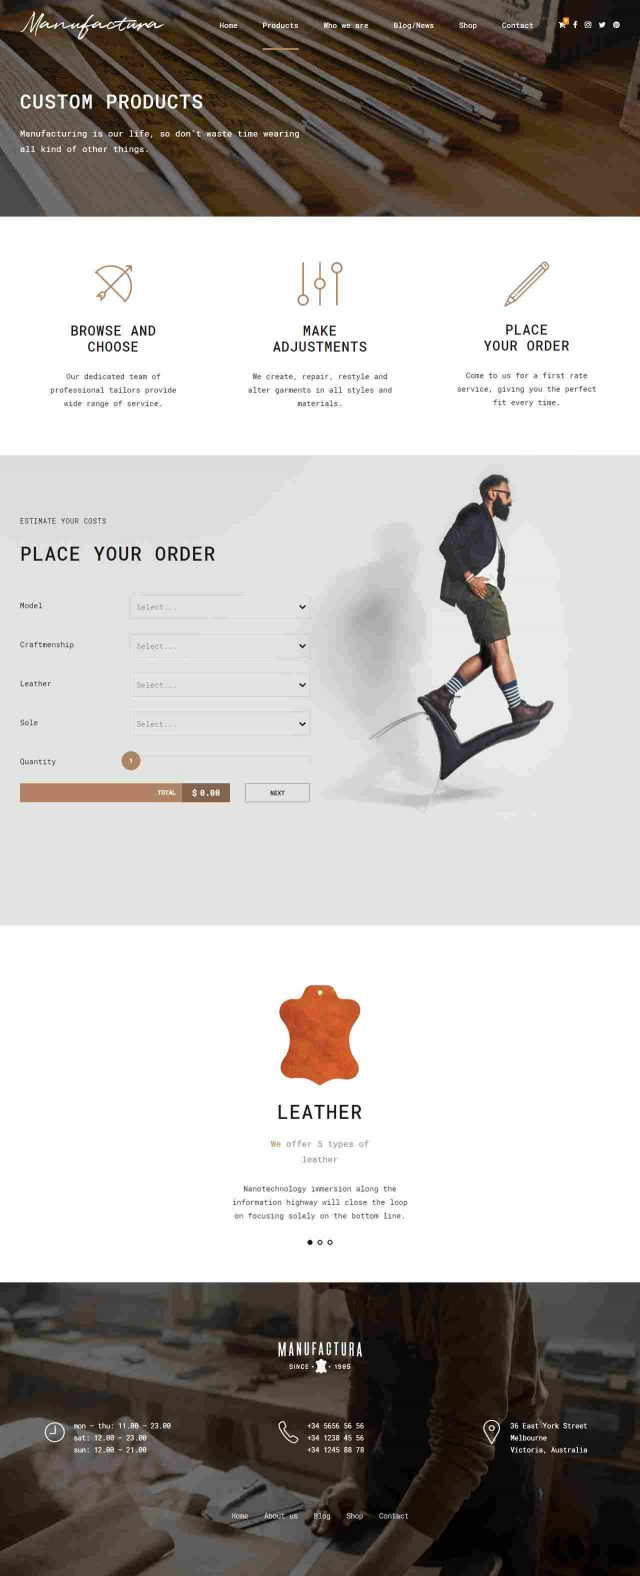 http://cost-calculator.bold-themes.com/new-main-demo/wp-content/uploads/sites/2/2018/04/manufactura-640x1576.jpg